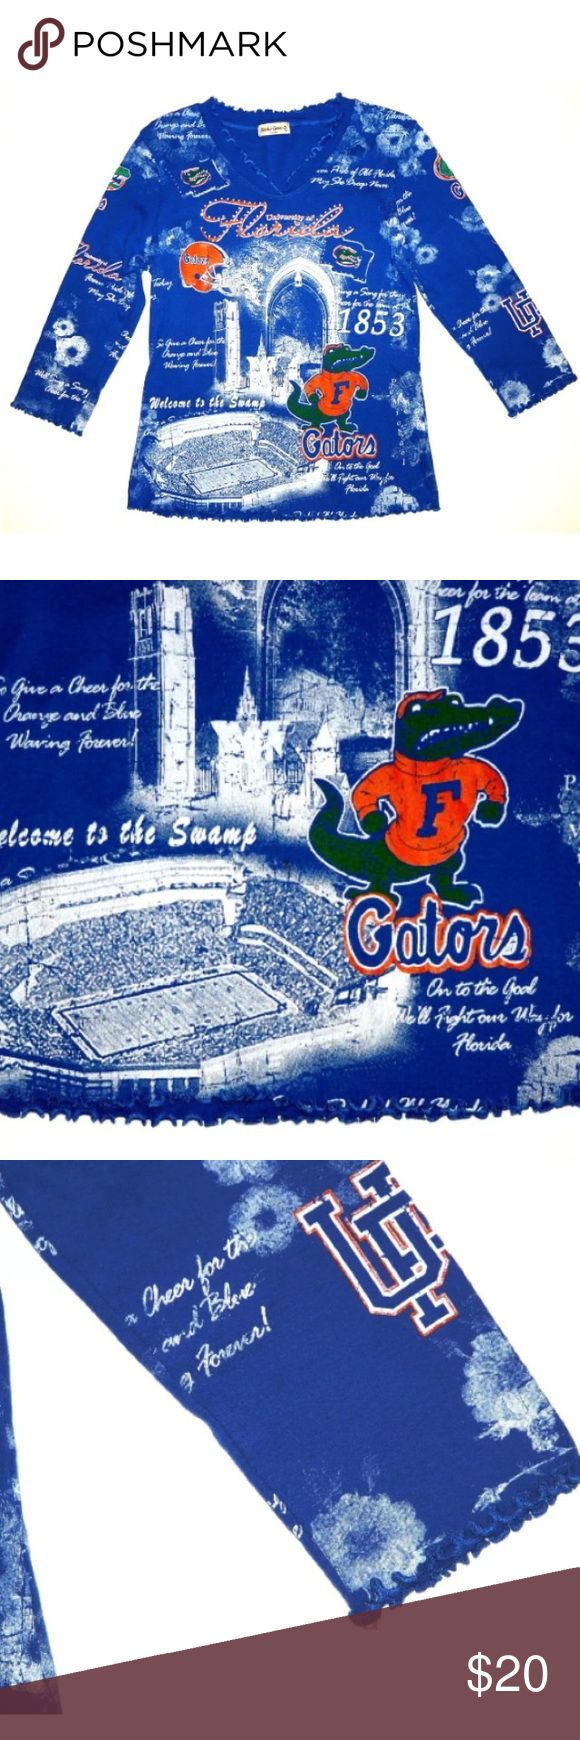 """University of Florida Gators Bling Shirt Small Ladies University of Florida Shirt with BLING! Size Small Made of 100% Cotton Small ruffles around the v-neck, cuffs and bottom Measures 17.5"""" across chest flat from underarm to underarm Sleeves are 3/4 length. Sleeves measure 17"""" from the shoulder seam down to the cuff The shirt is soooooo cute!!! No excessive signs of wear. Studio Gem Tops Tees - Short Sleeve"""